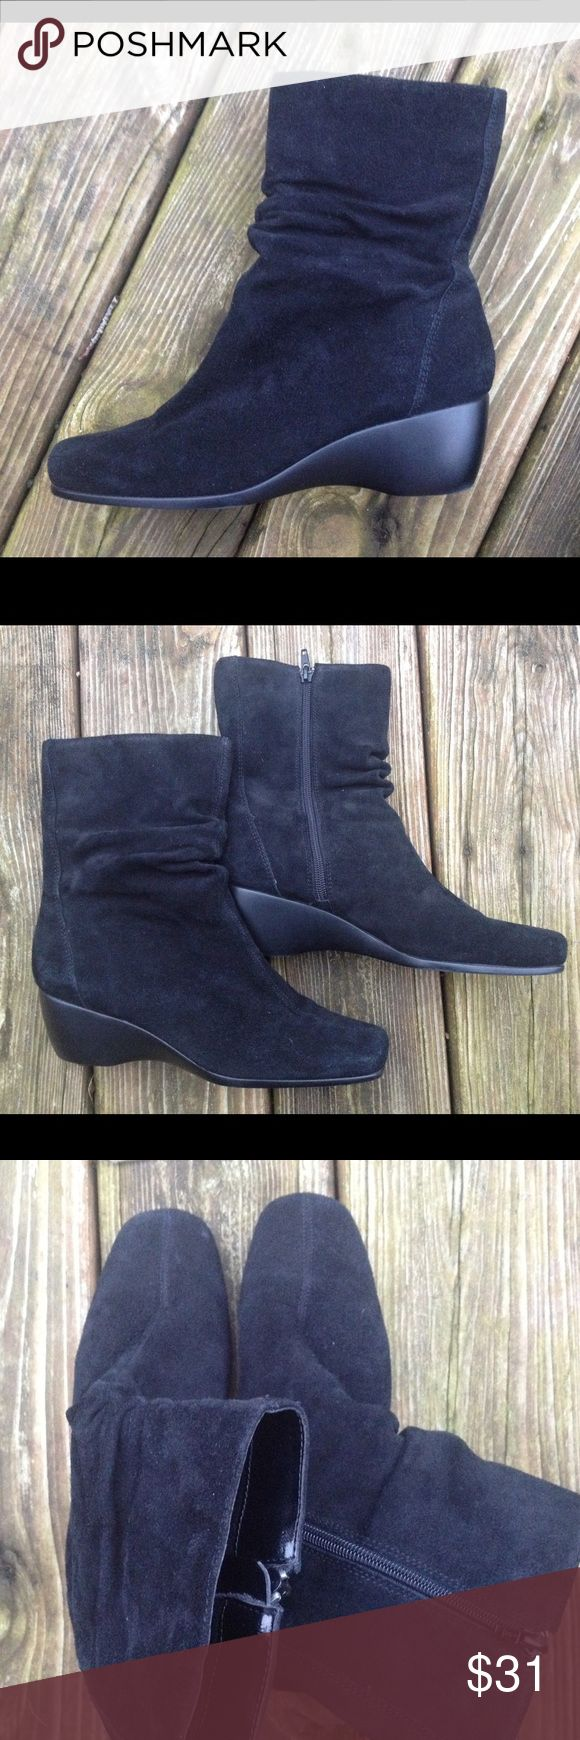 BEAR TRAPS Suede Black Zip Ankle Boots Shoes 8 Ok. I'm extremely bummed about the fact that I am a 10 and I can't keep these. This is the EXACT type of boot I've been wanting for an upcoming Europe trip. A nice solid wedge, water resistant, can be worn casual or easily dressed up. Not big and clunky if your a traveler. Just simple and versatile with that little bit of slouch for character. And Bear Traps are such comfortable shoes! Women's size 8. Bear Traps Shoes Ankle Boots & Booties